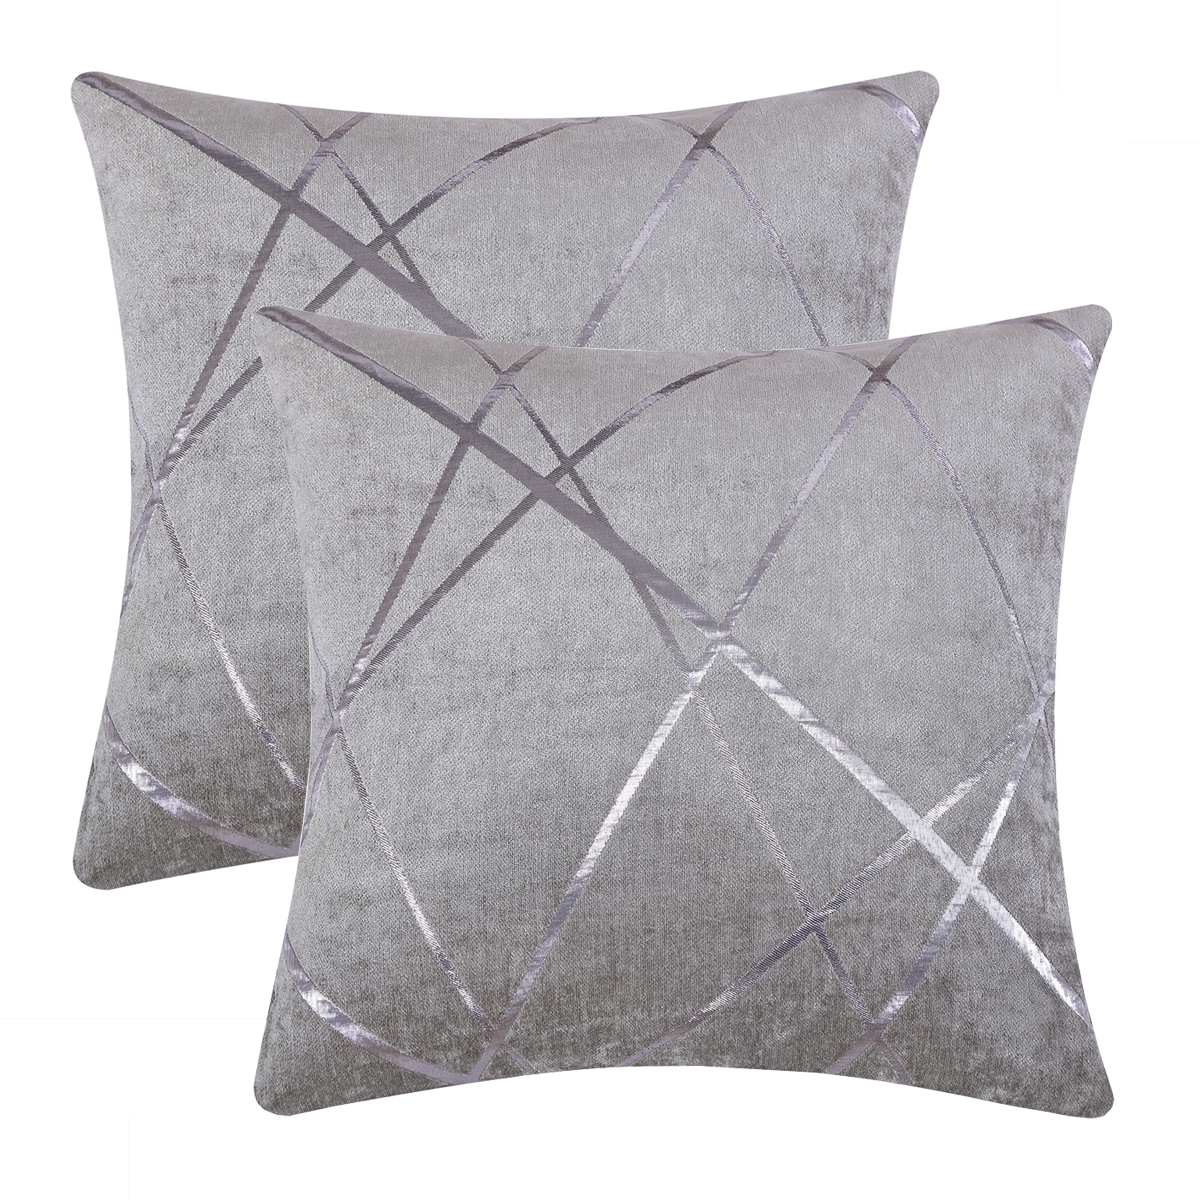 Geometric Stripe Cushion Covers <font><b>Cases</b></font> for Sofa Bed Home Decor Couch Throw <font><b>Pillow</b></font> Covers <font><b>Cases</b></font> 45x45 50x50 Pillowcases <font><b>30x50</b></font> image